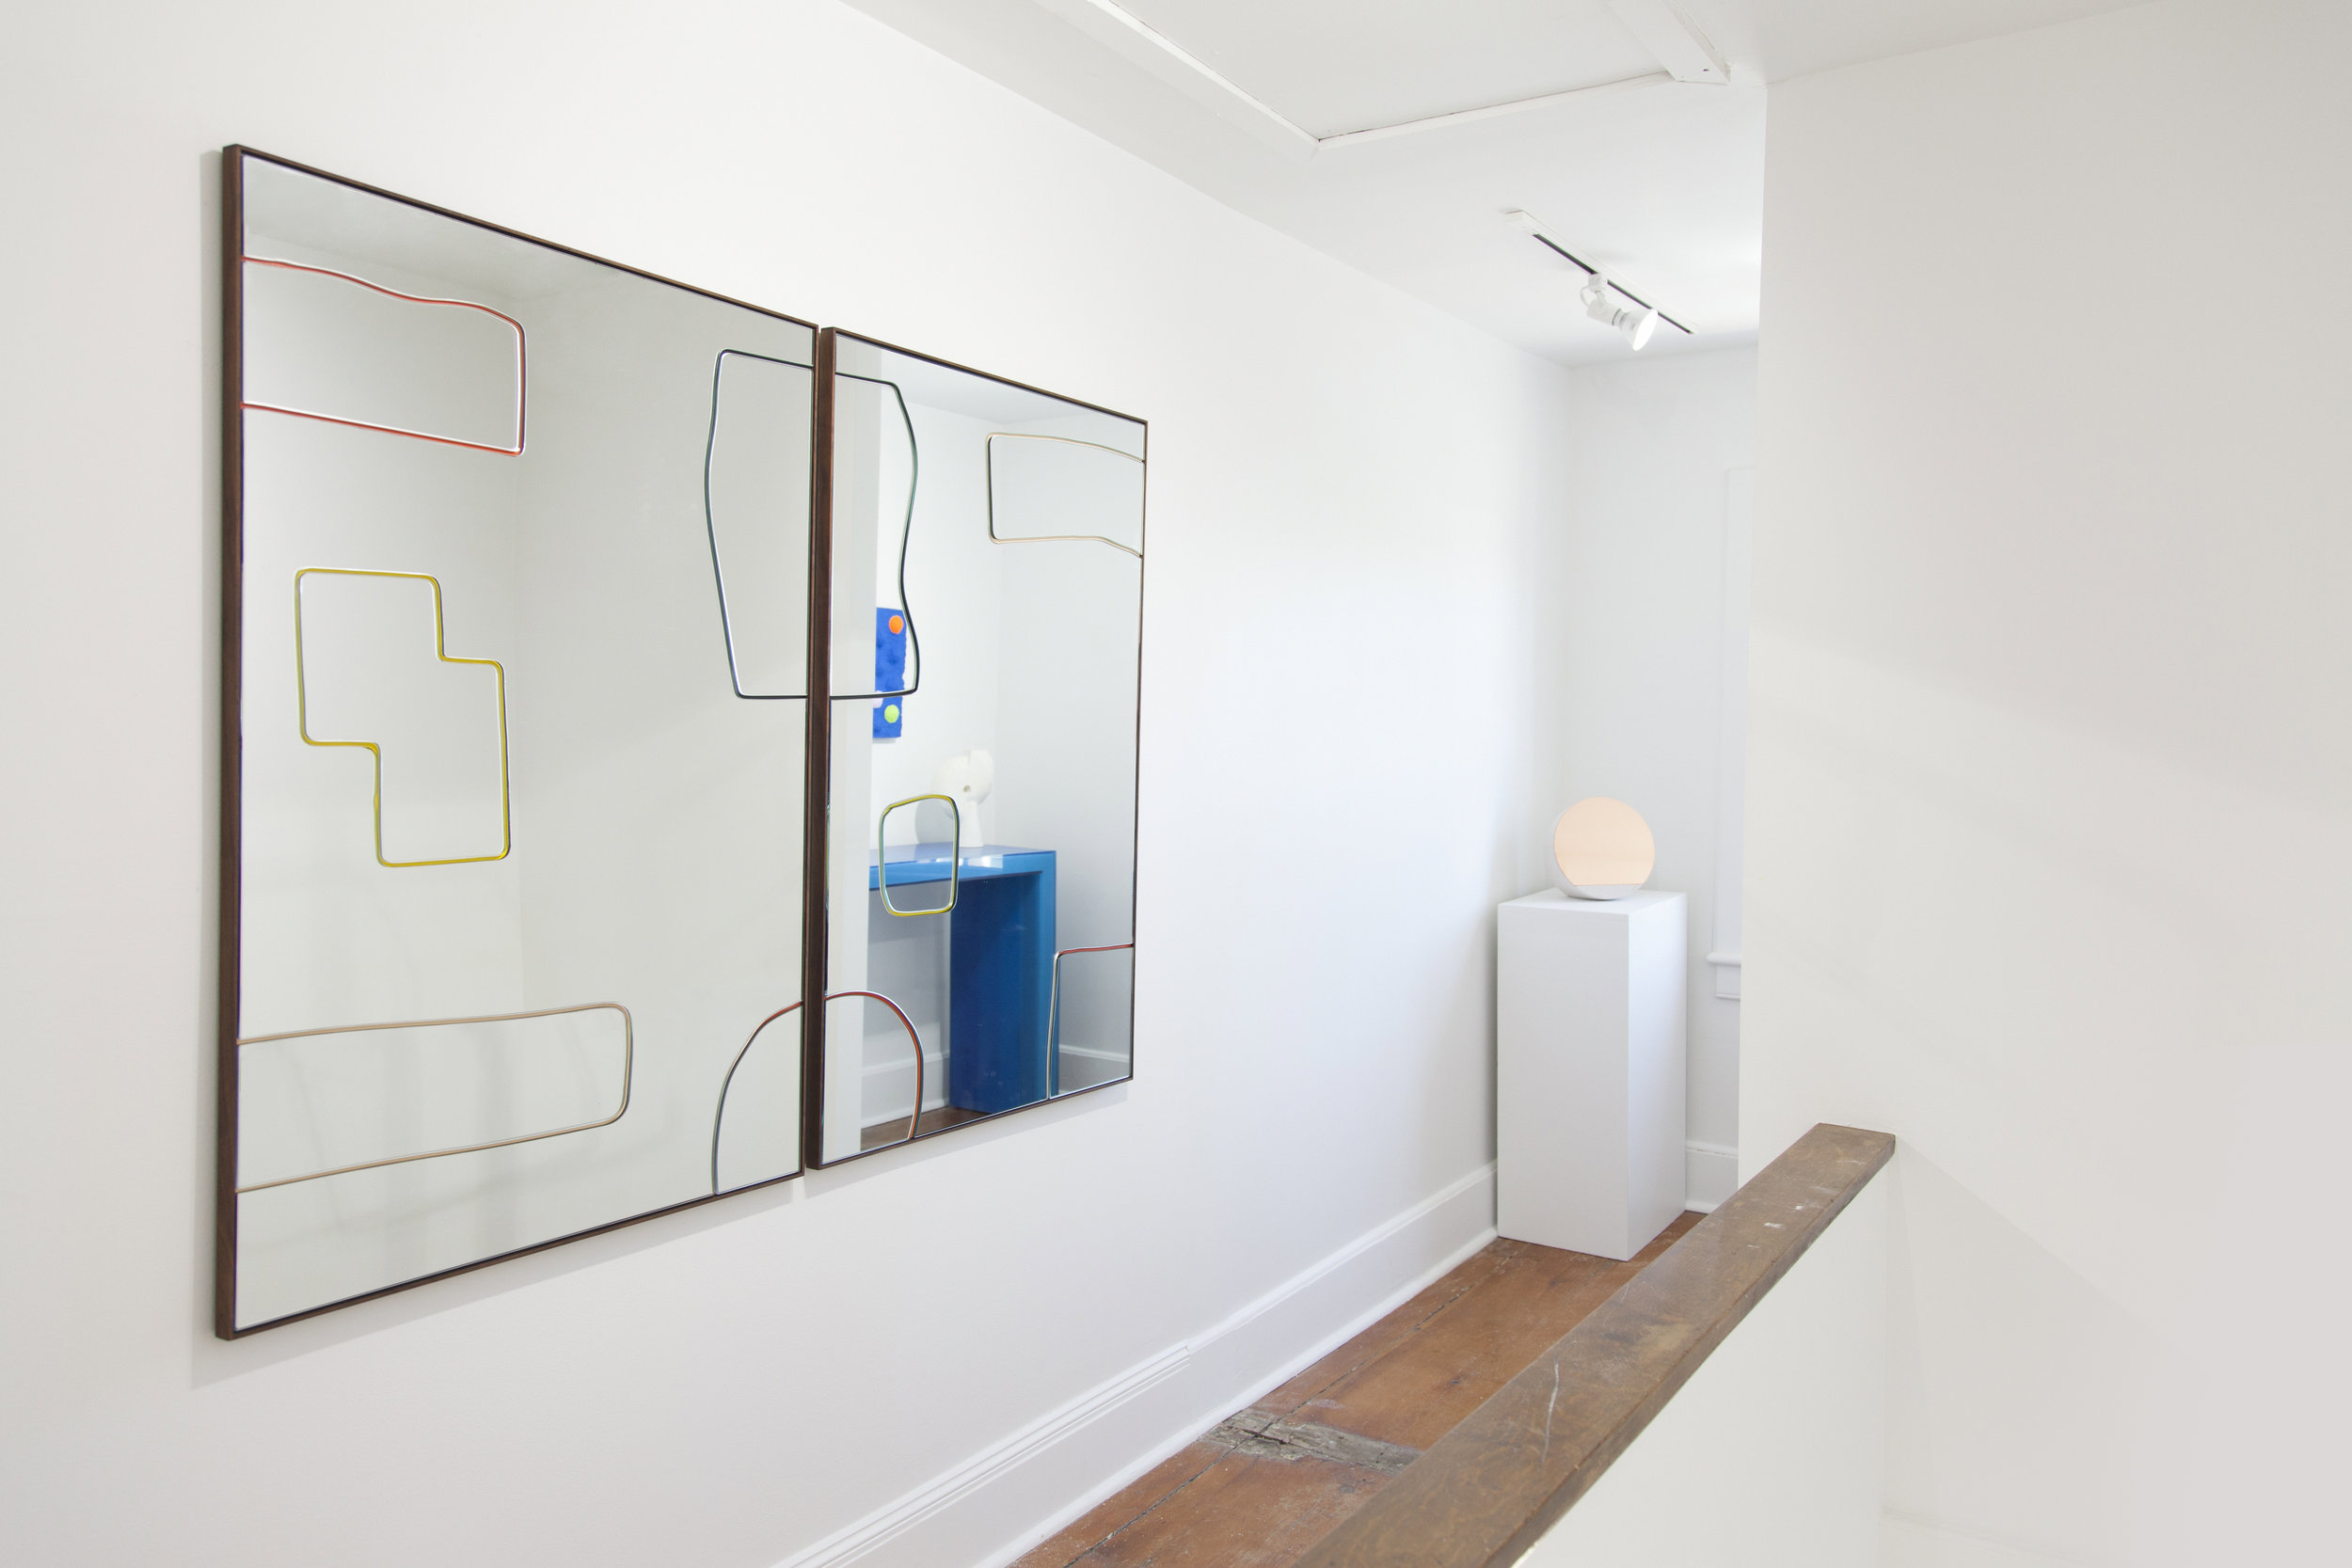 Bower_Dusen Dusen Mirrors-Object of Common Interest Small Mirror-Facture-Humble Matter-Chiaozza in reflection.jpg